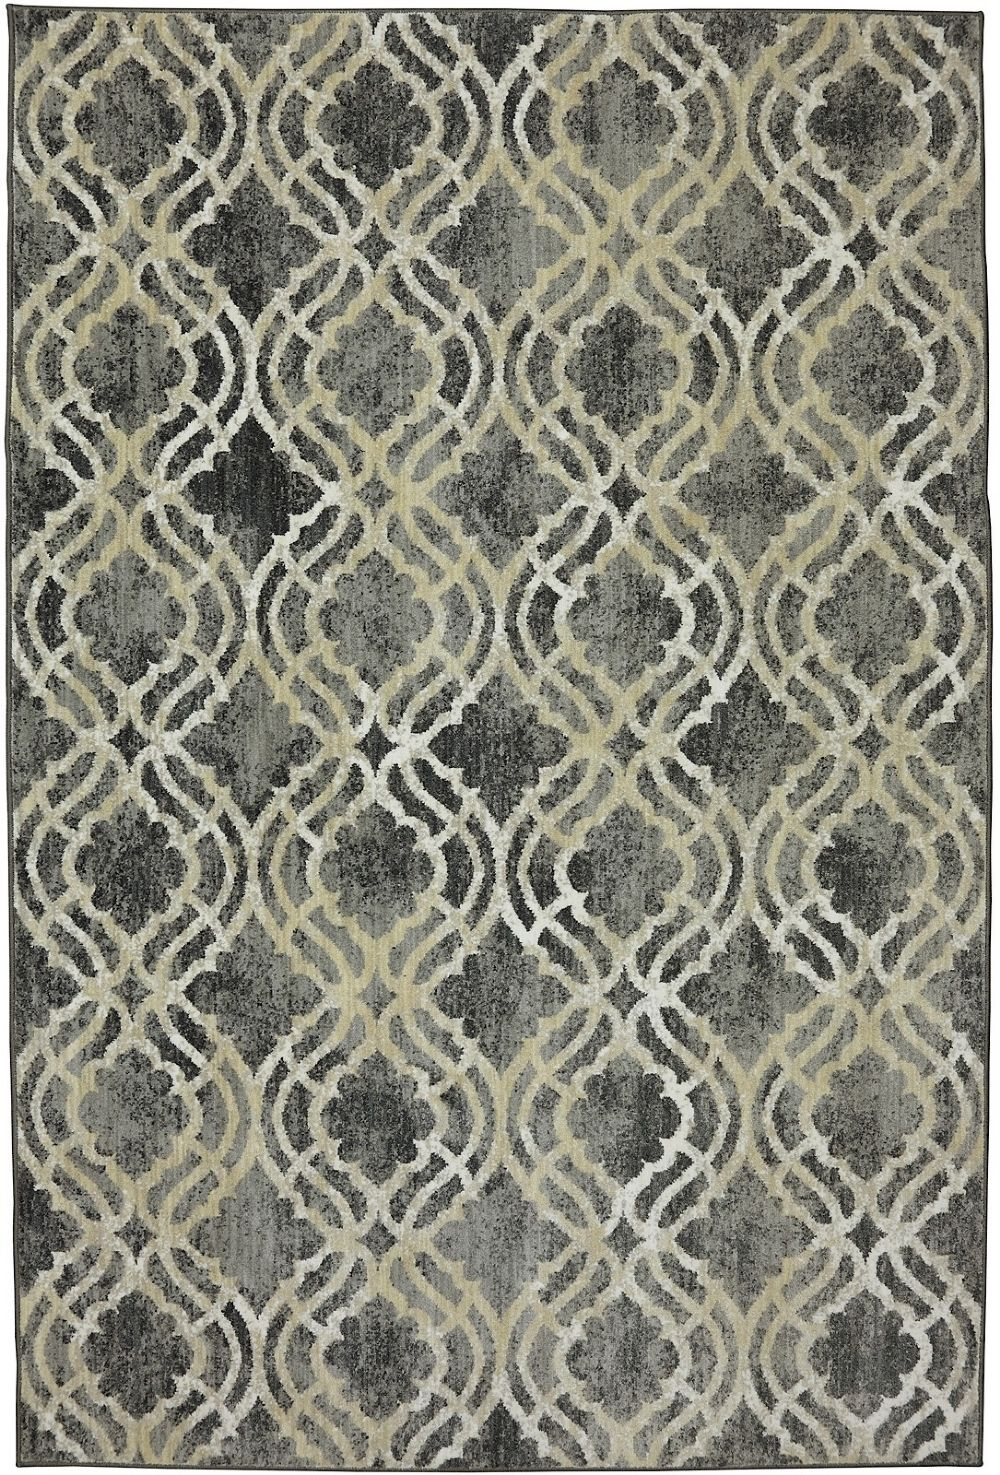 karastan euphoria transitional area rug collection